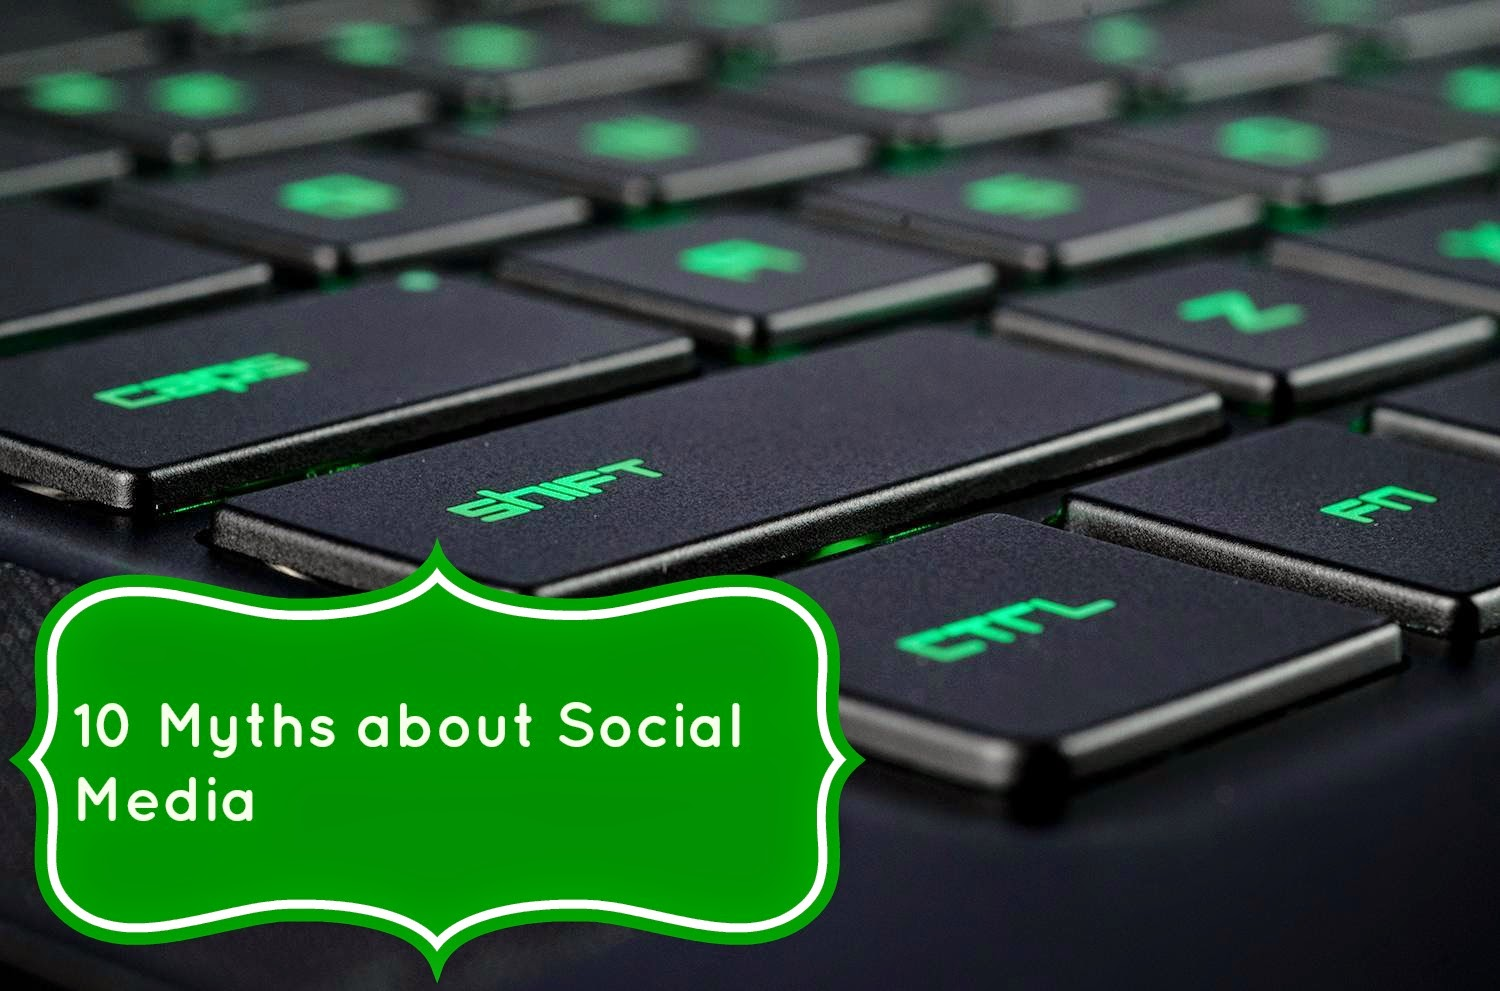 10 myths about social media